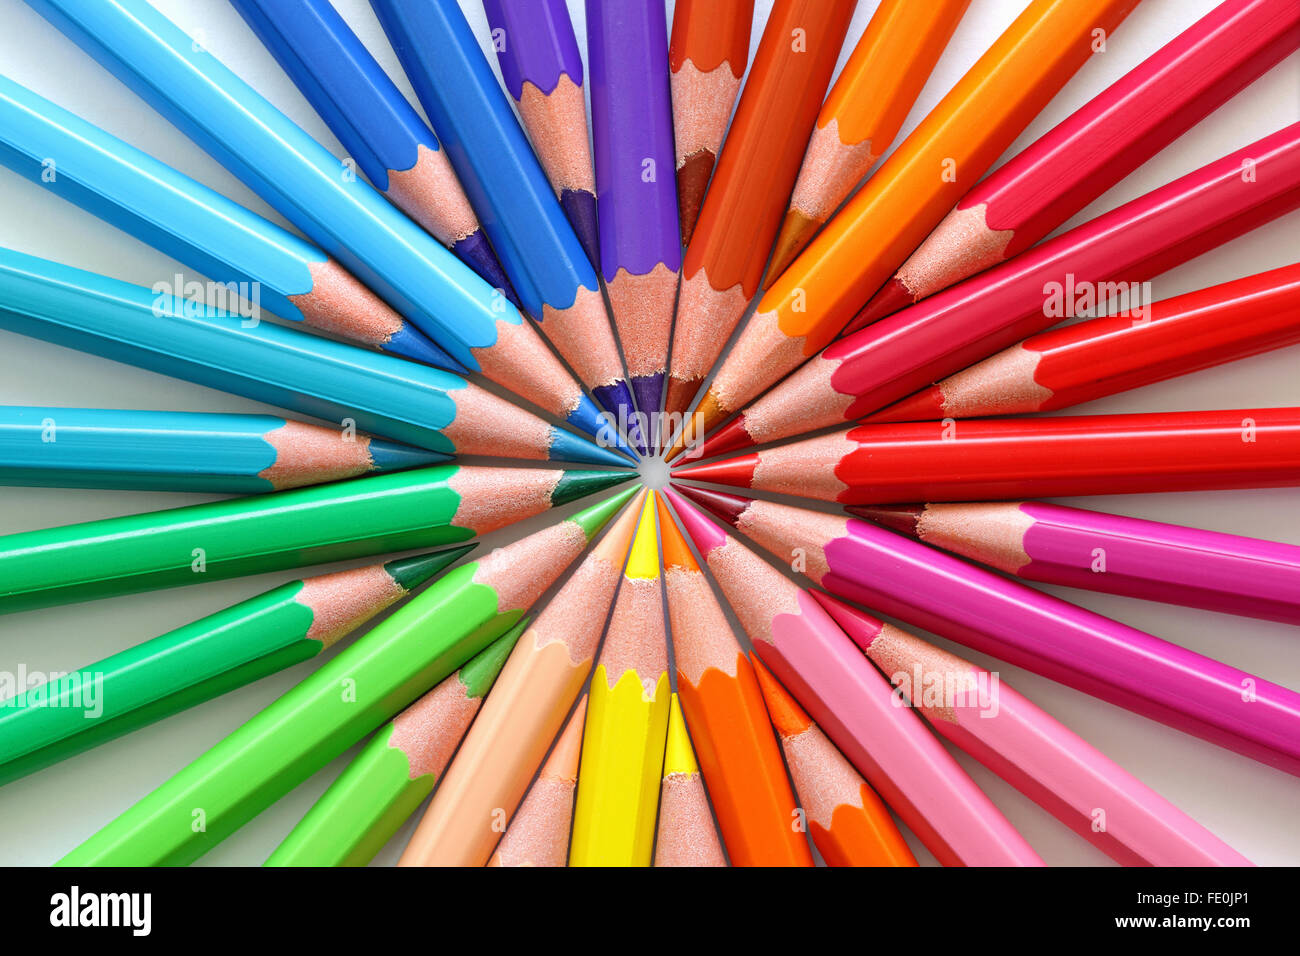 Macro of colored pencils in a circle. - Stock Image